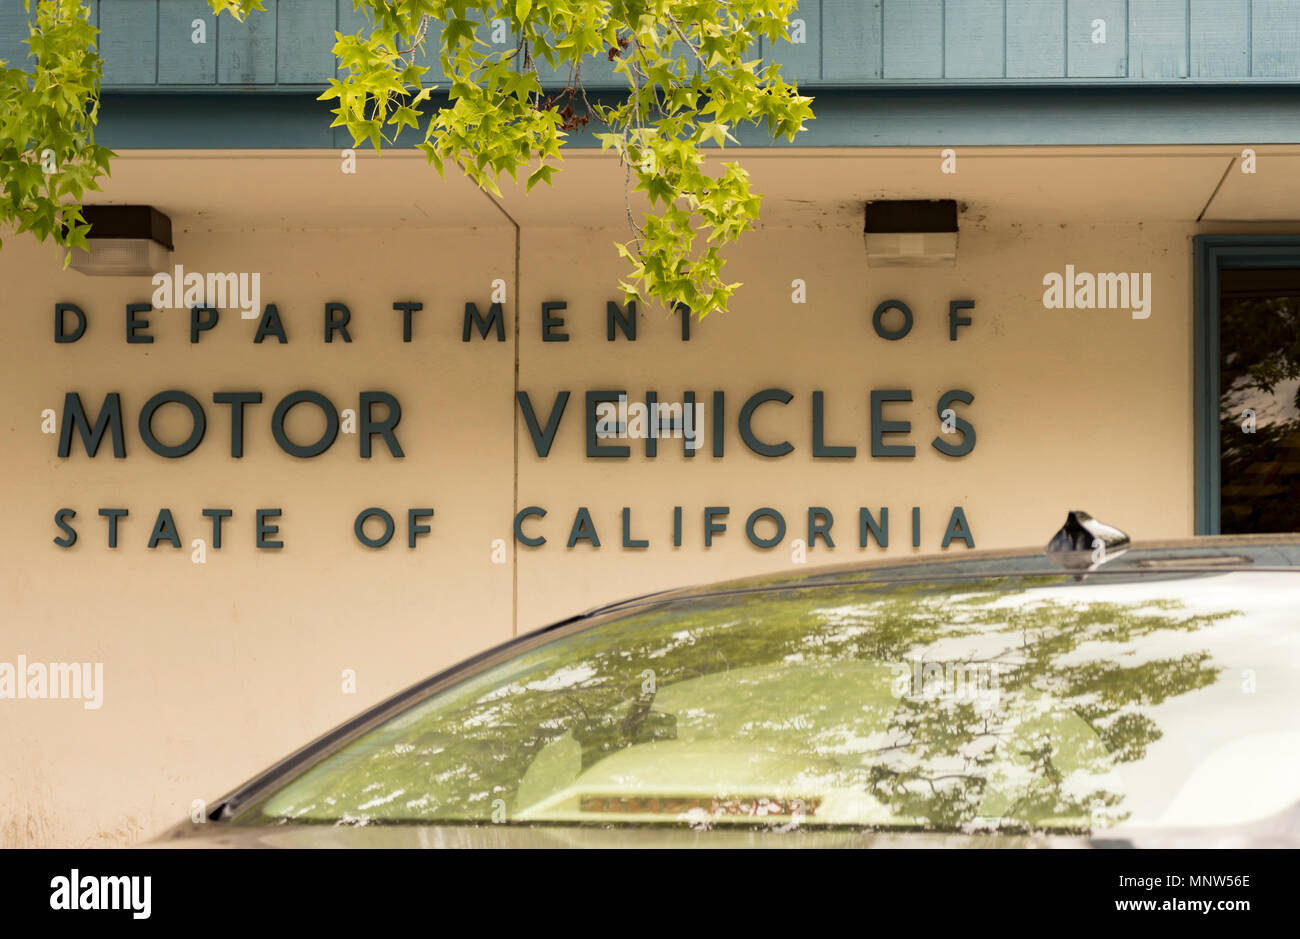 Los Gatos, California, USA - May 16, 2018: State of California Department of Motor Vehicles (DMV) sign in the town of Los Gatos, Northern California. - Stock Image